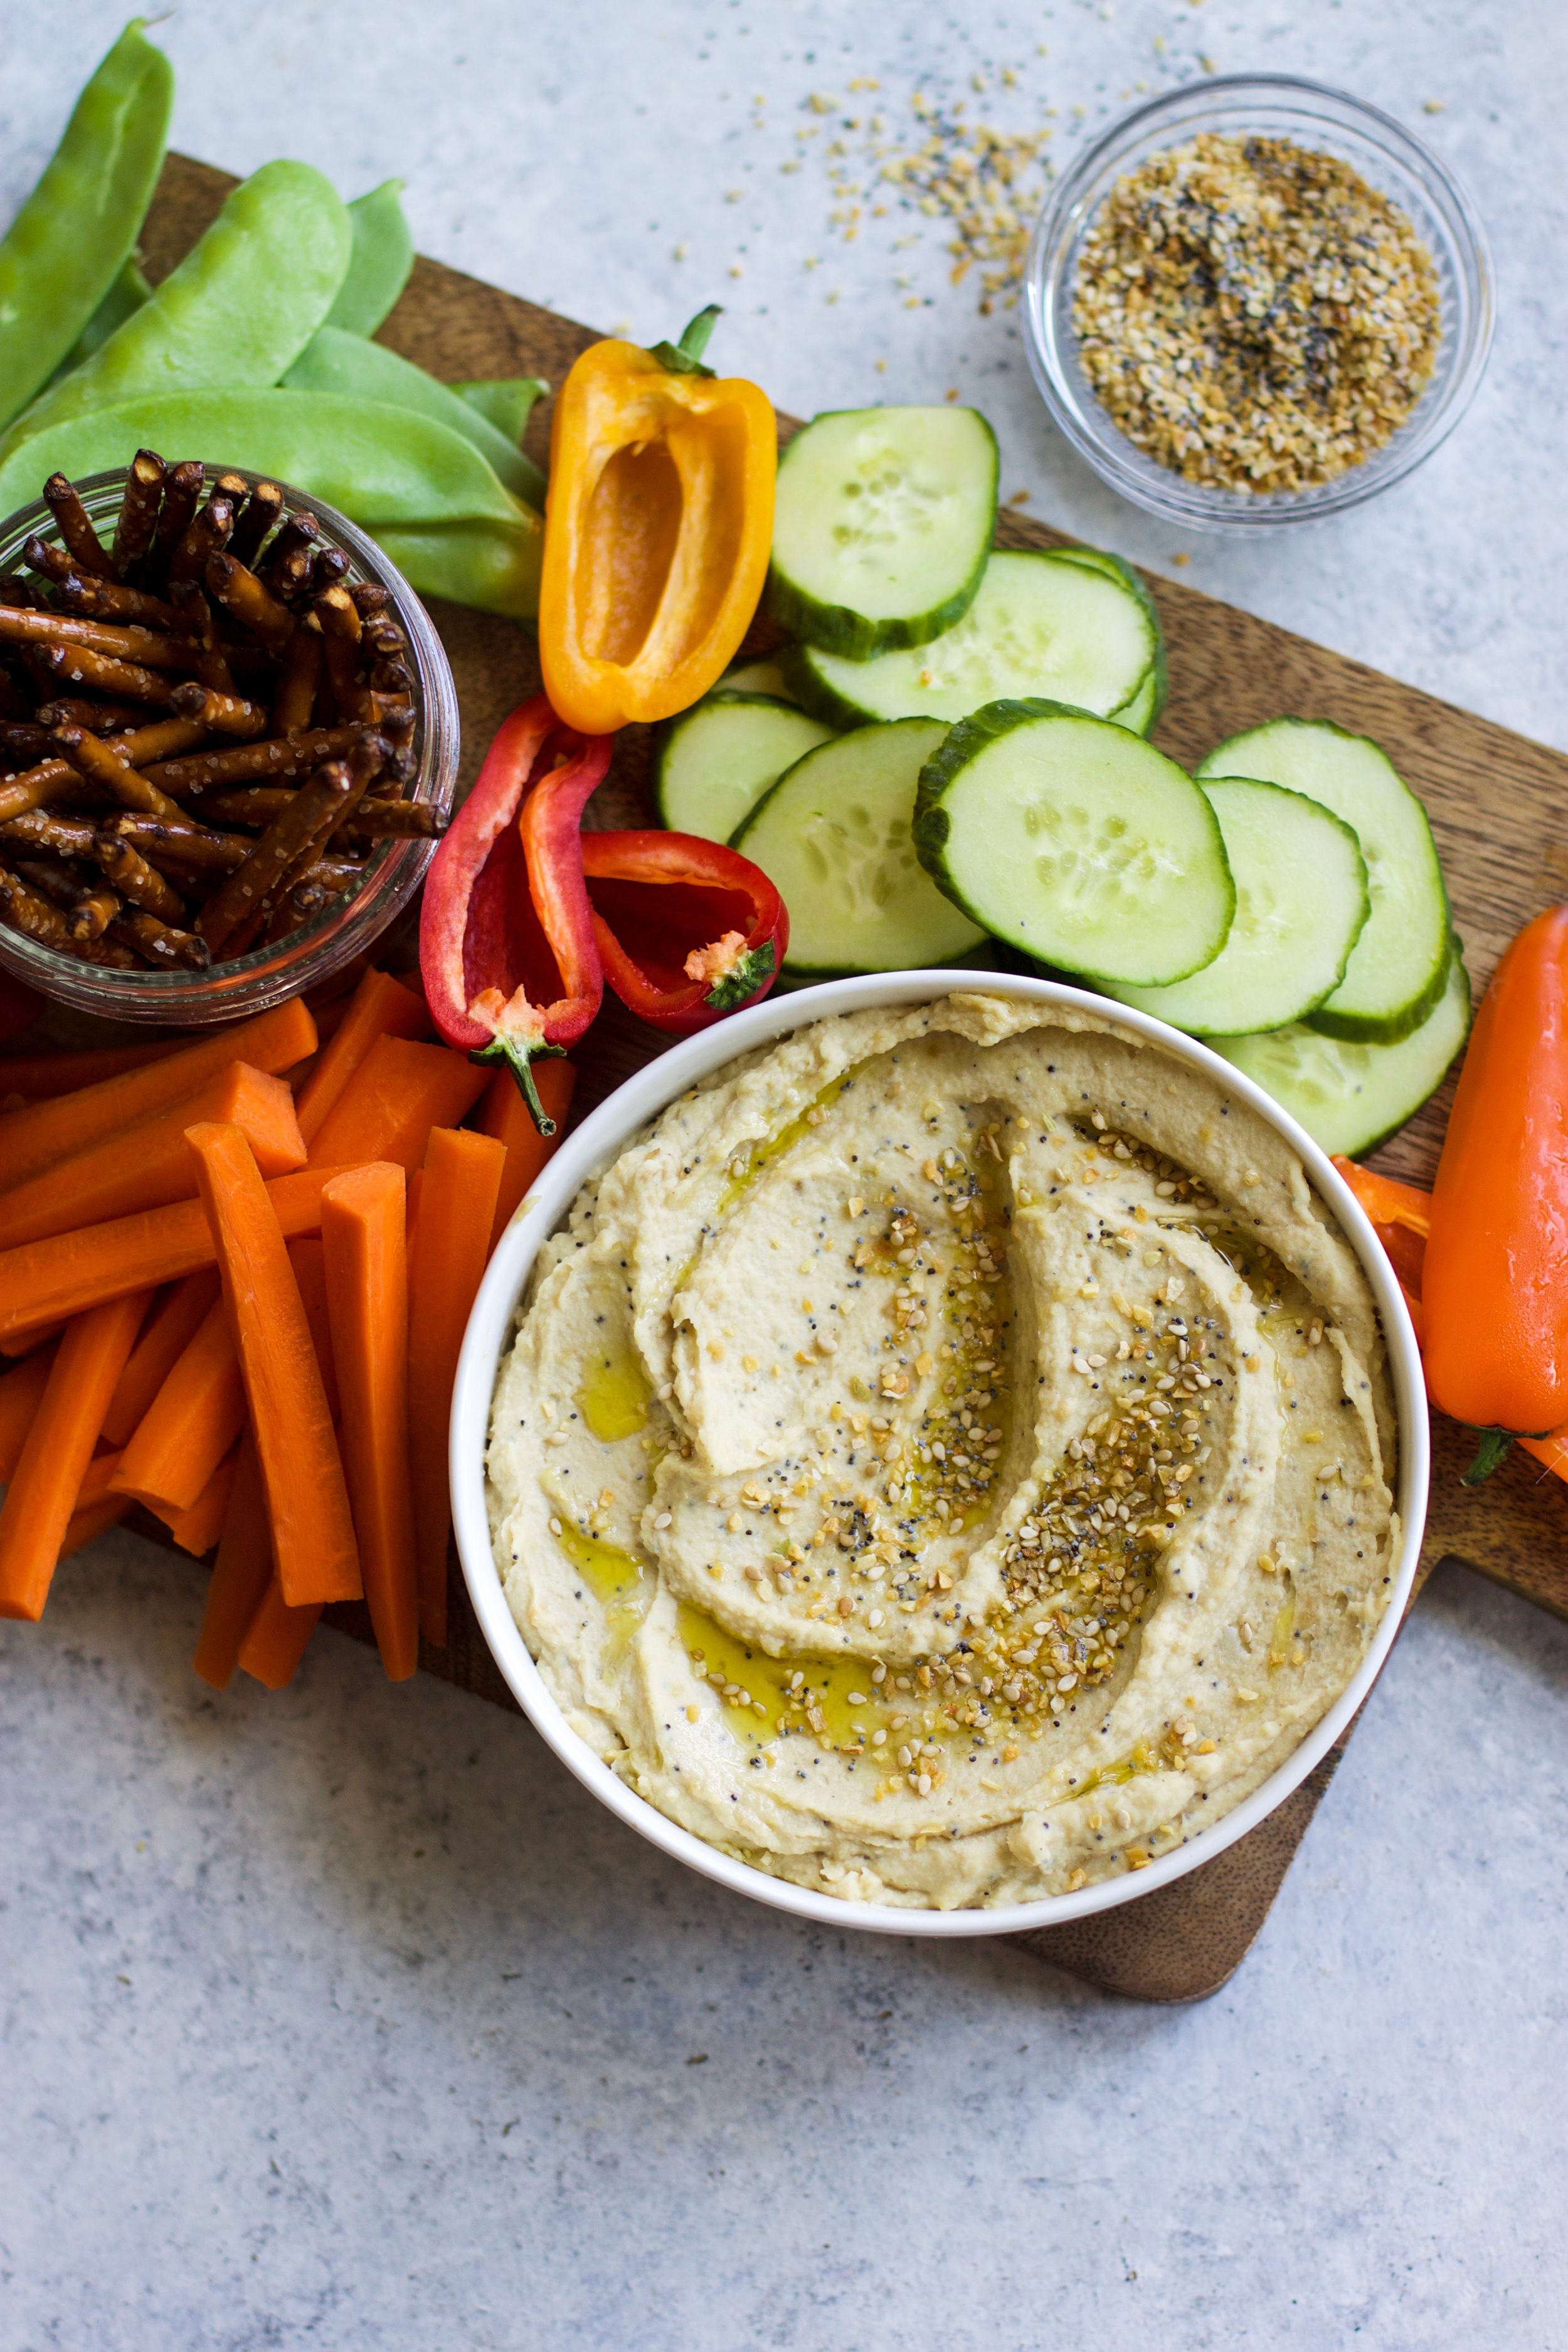 Everything Bagel Hummus: My Diary of Us